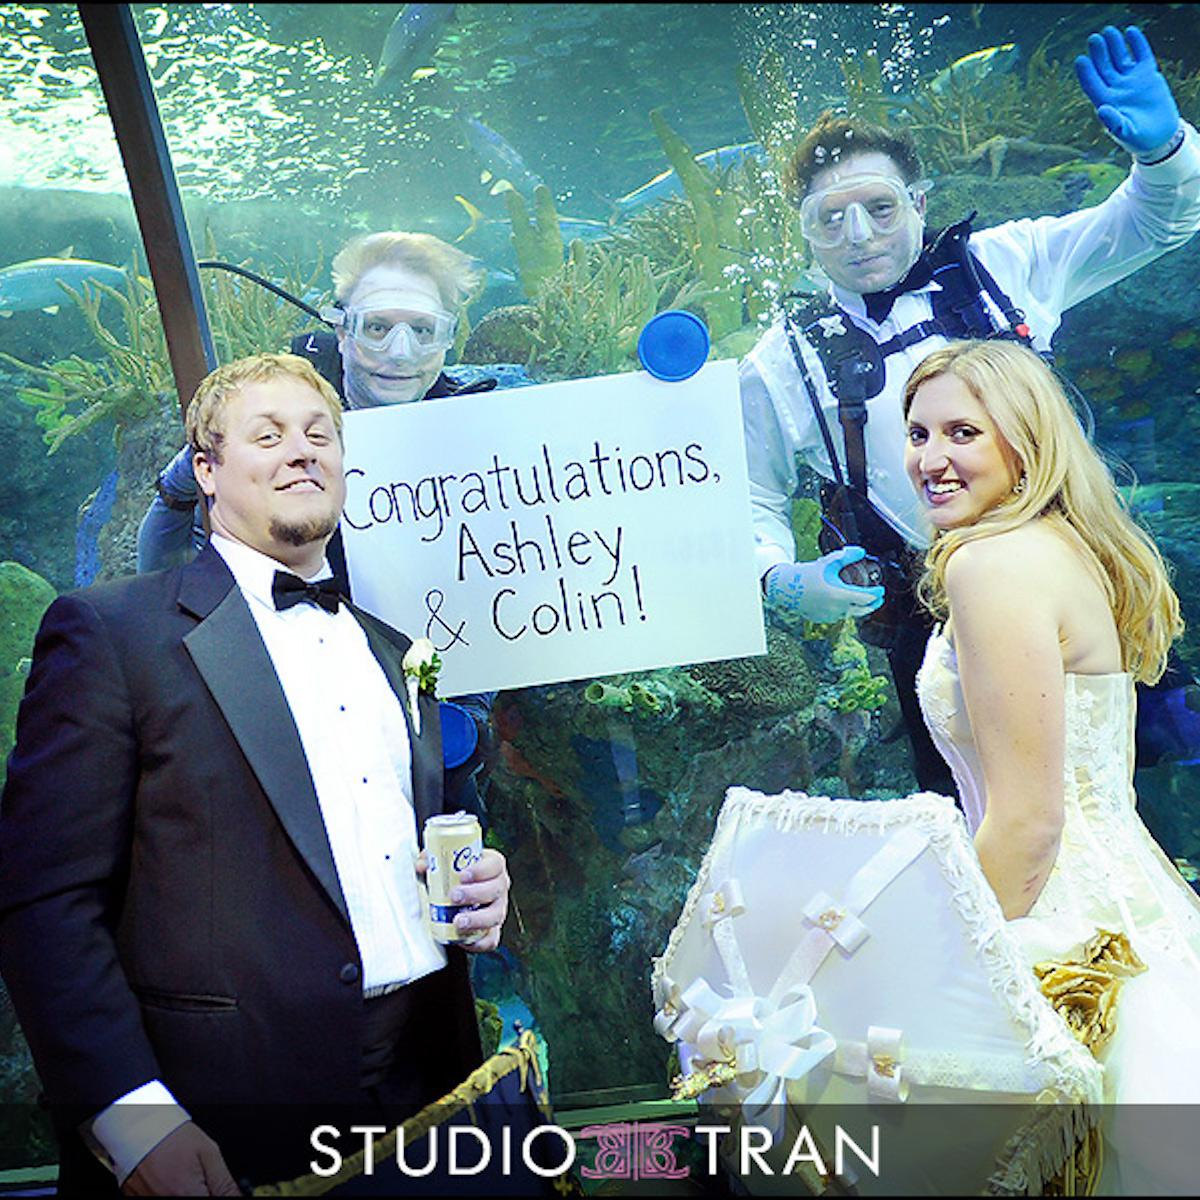 Divers hold a congratulatory sign for newlyweds at the Aquarium. Photo: Studio Tran